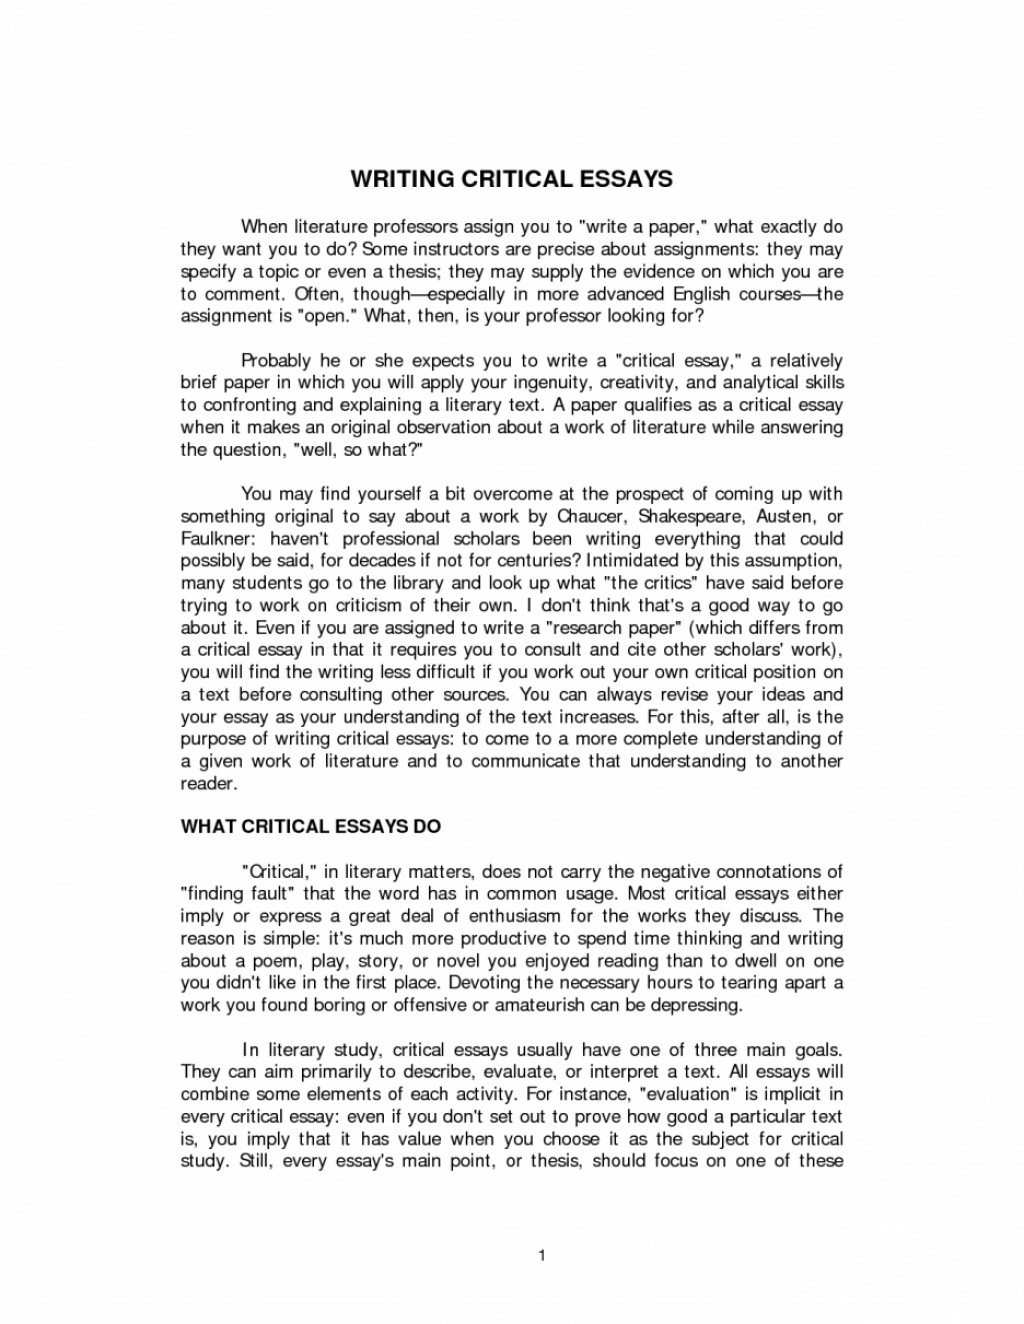 006 Essay Example Help Writing Descriptive Nxcpjzbtuh Examples Of About Place Your Favorite Short Sample In Philippines Awesome A Paragraph Ppt Large